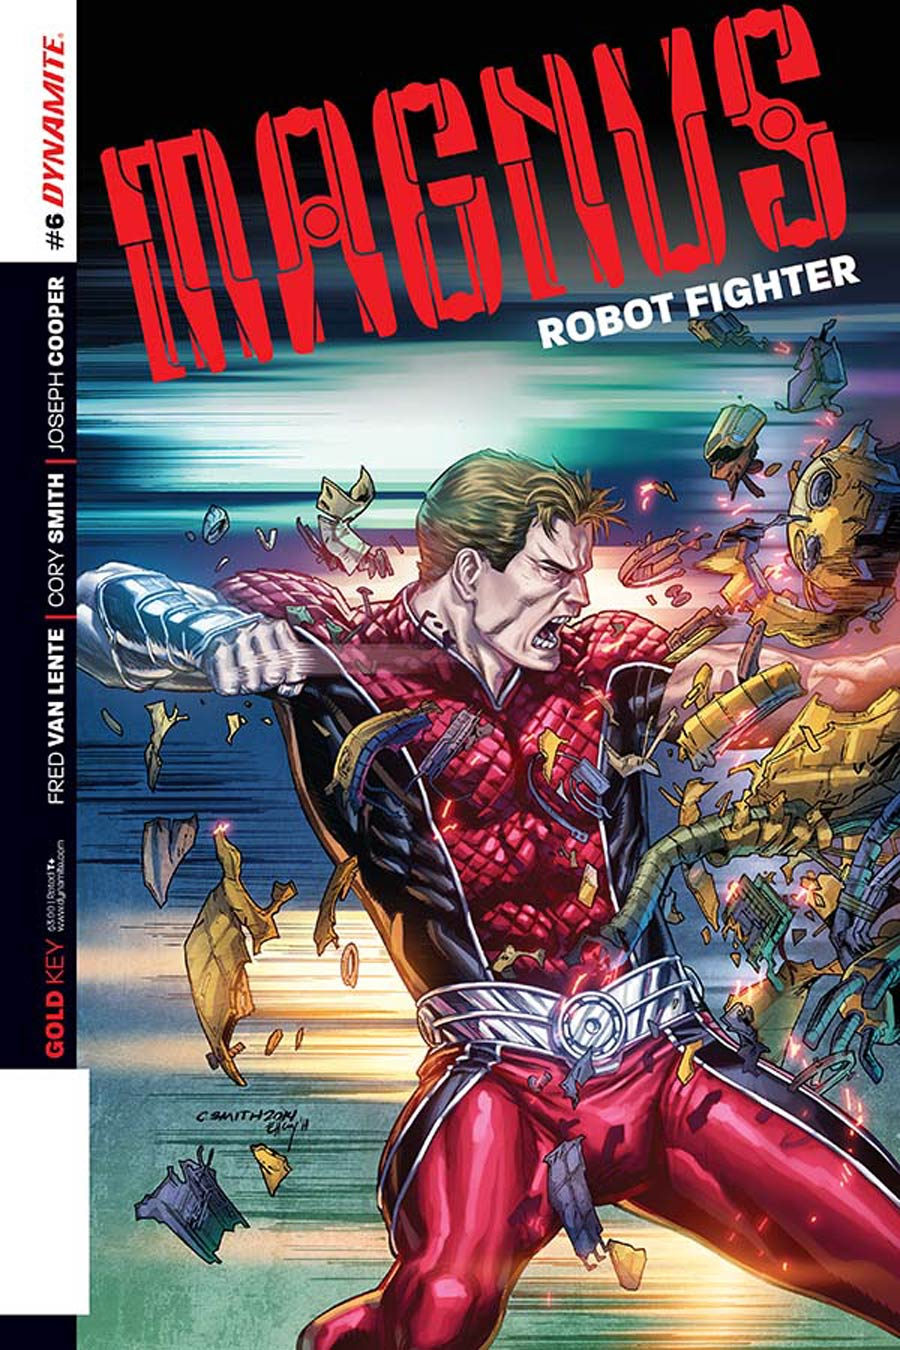 Magnus Robot Fighter Vol 4 #6 Cover B Variant Cory Smith Subscription Cover